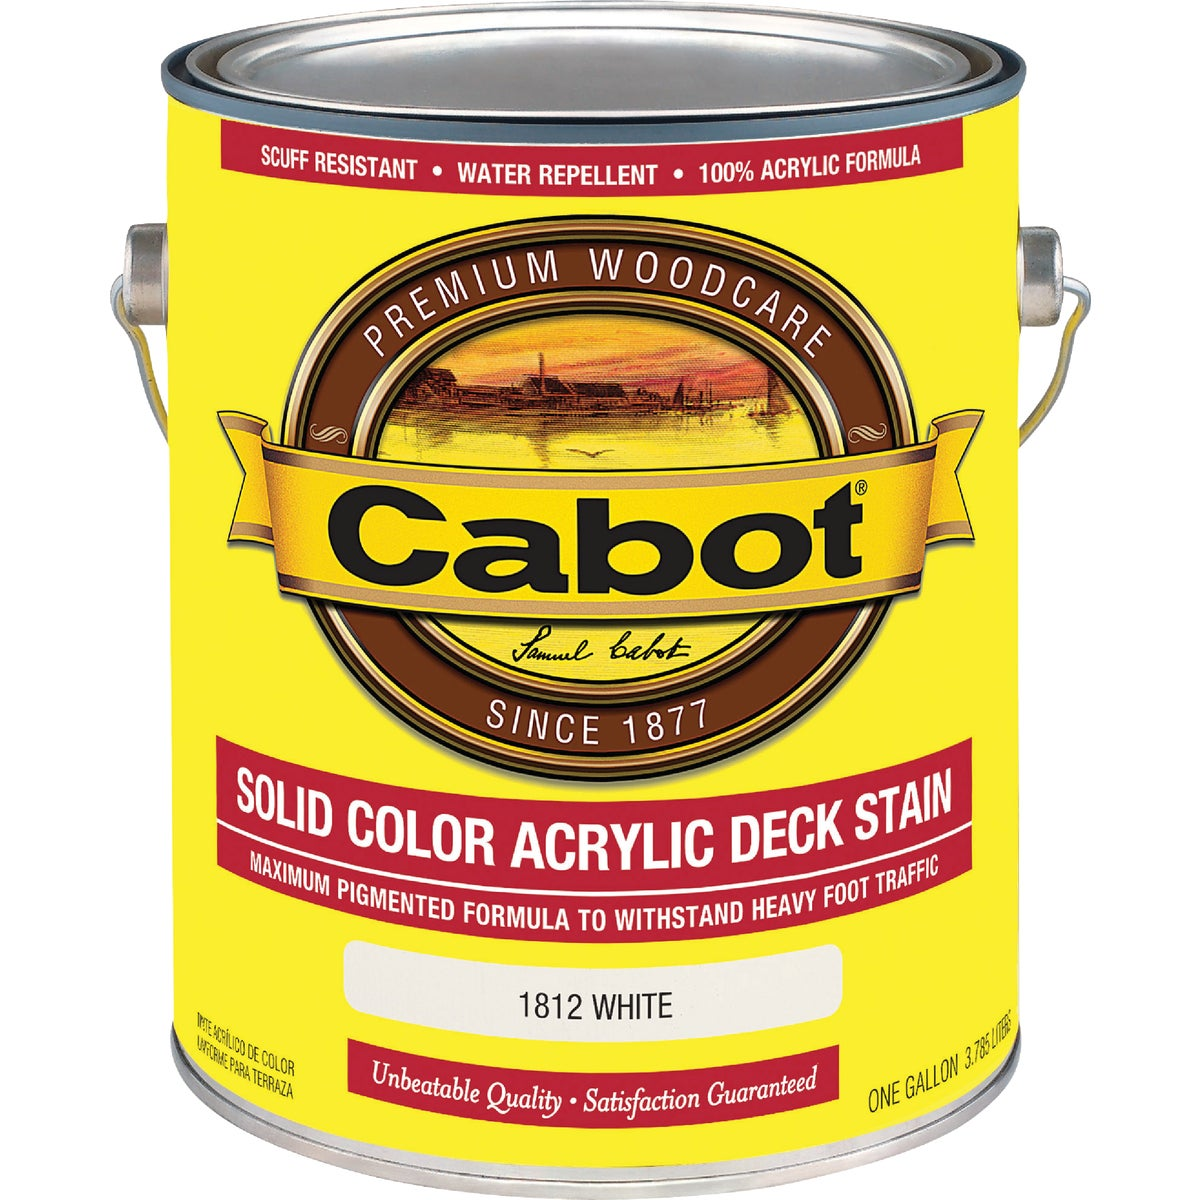 WHITE SOLID DECK STAIN - 140.0001812.007 by Valspar Corp